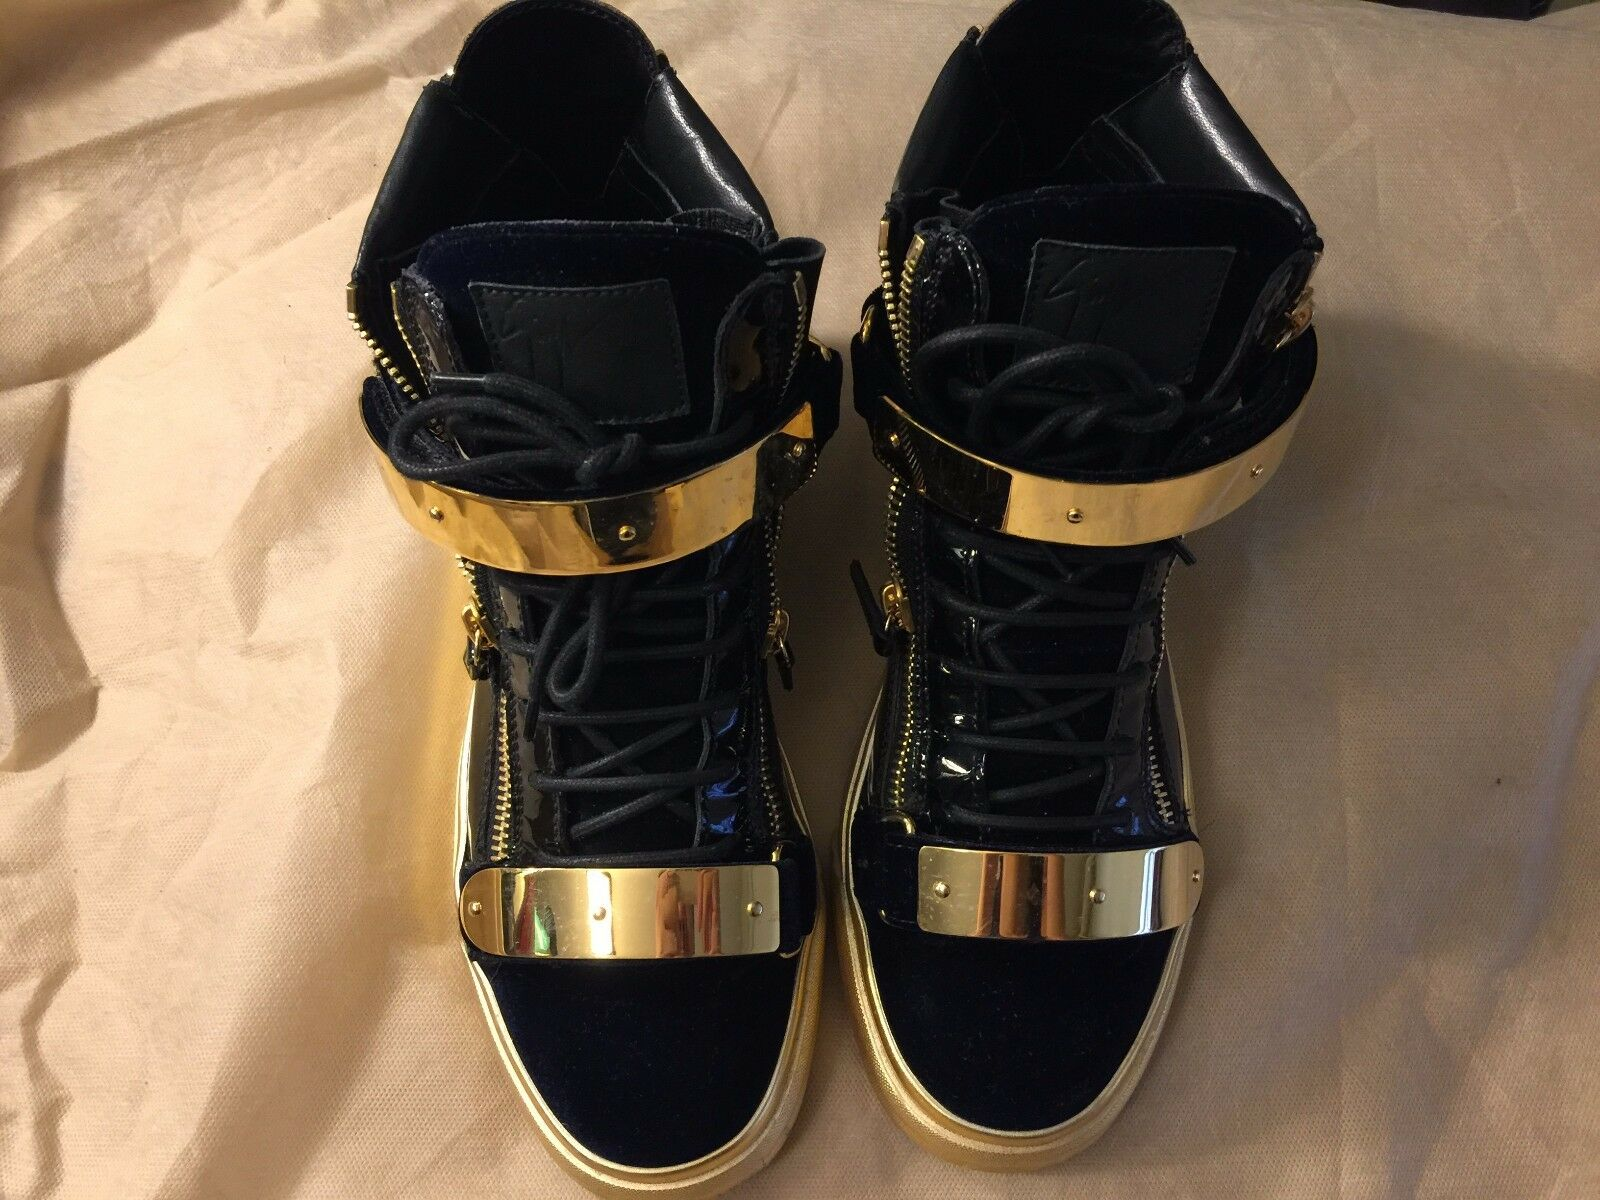 Giuseppe zanotti mens shoes, brand new, wear less than 5 times.